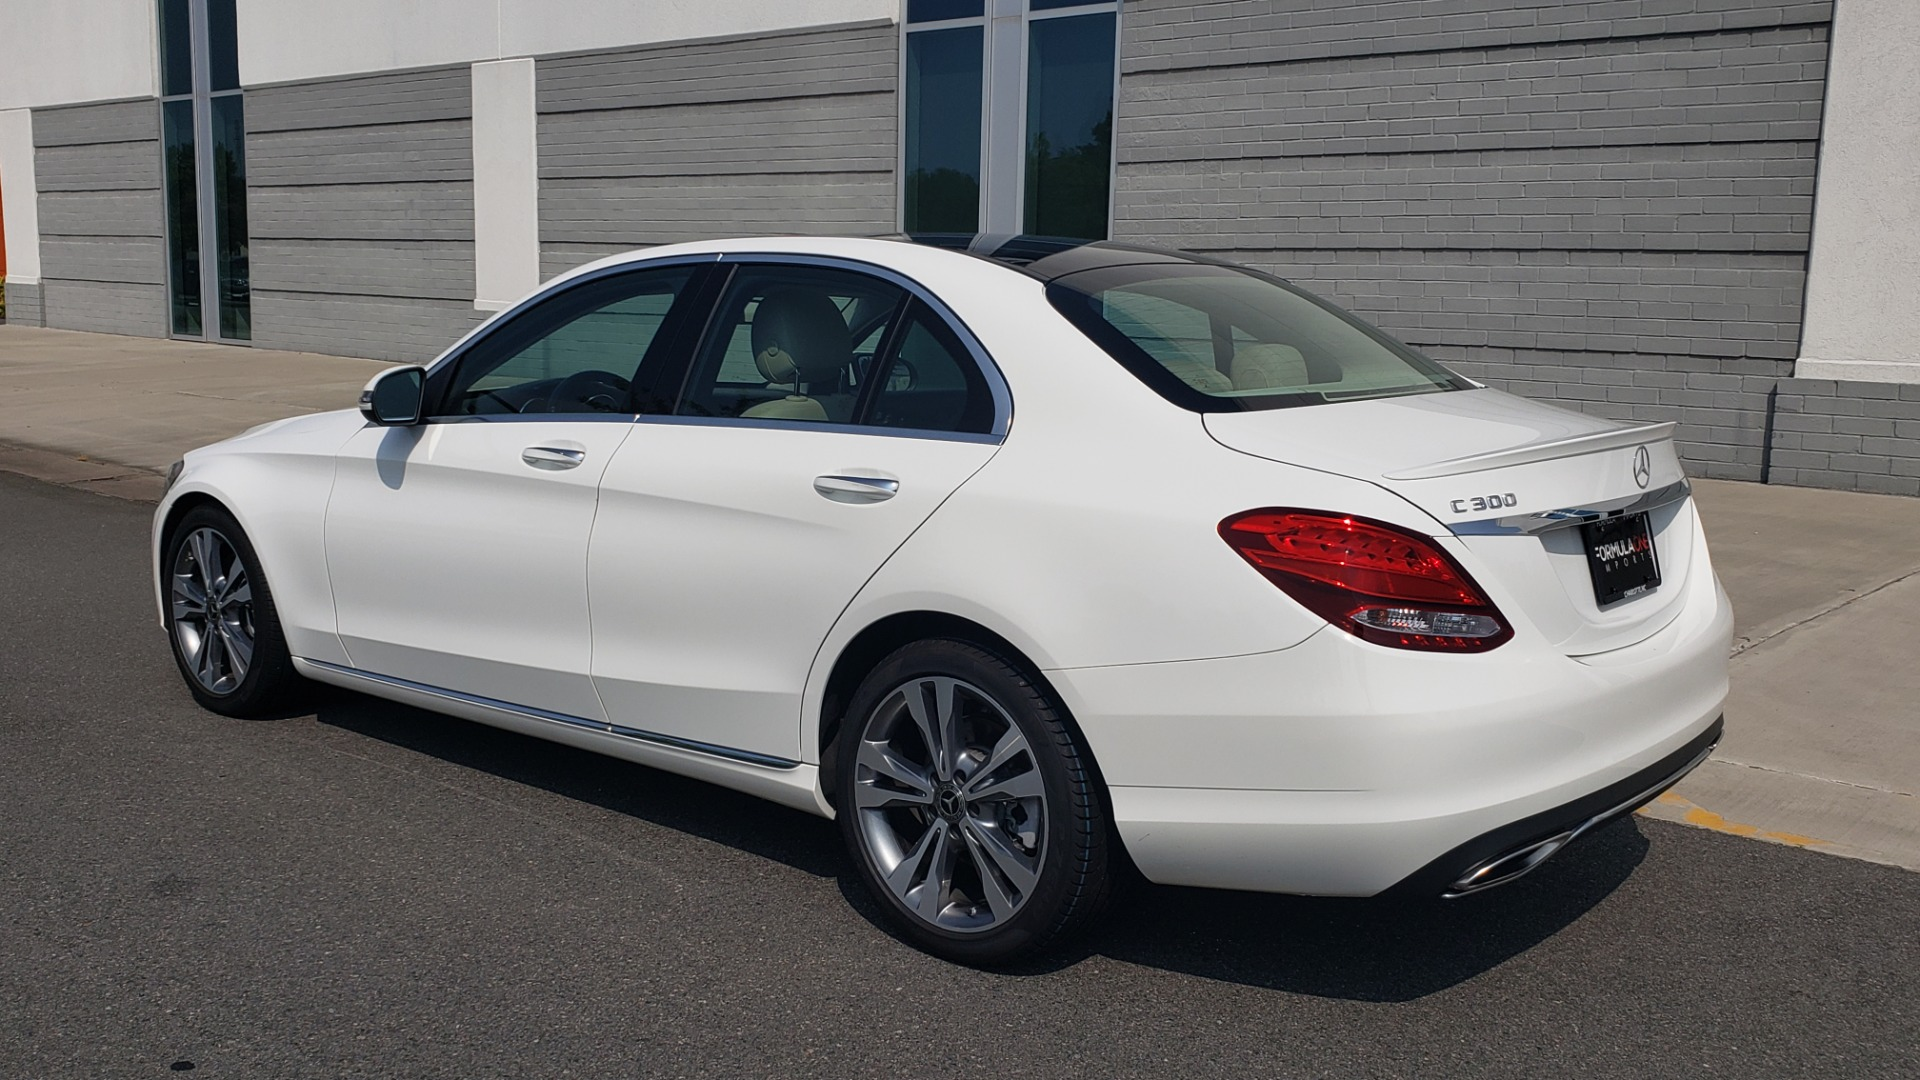 Used 2018 Mercedes-Benz C-CLASS C 300 PREMIUM / KEYLESS-GO / APPLE / PANO-ROOF / REARVIEW for sale $28,295 at Formula Imports in Charlotte NC 28227 7